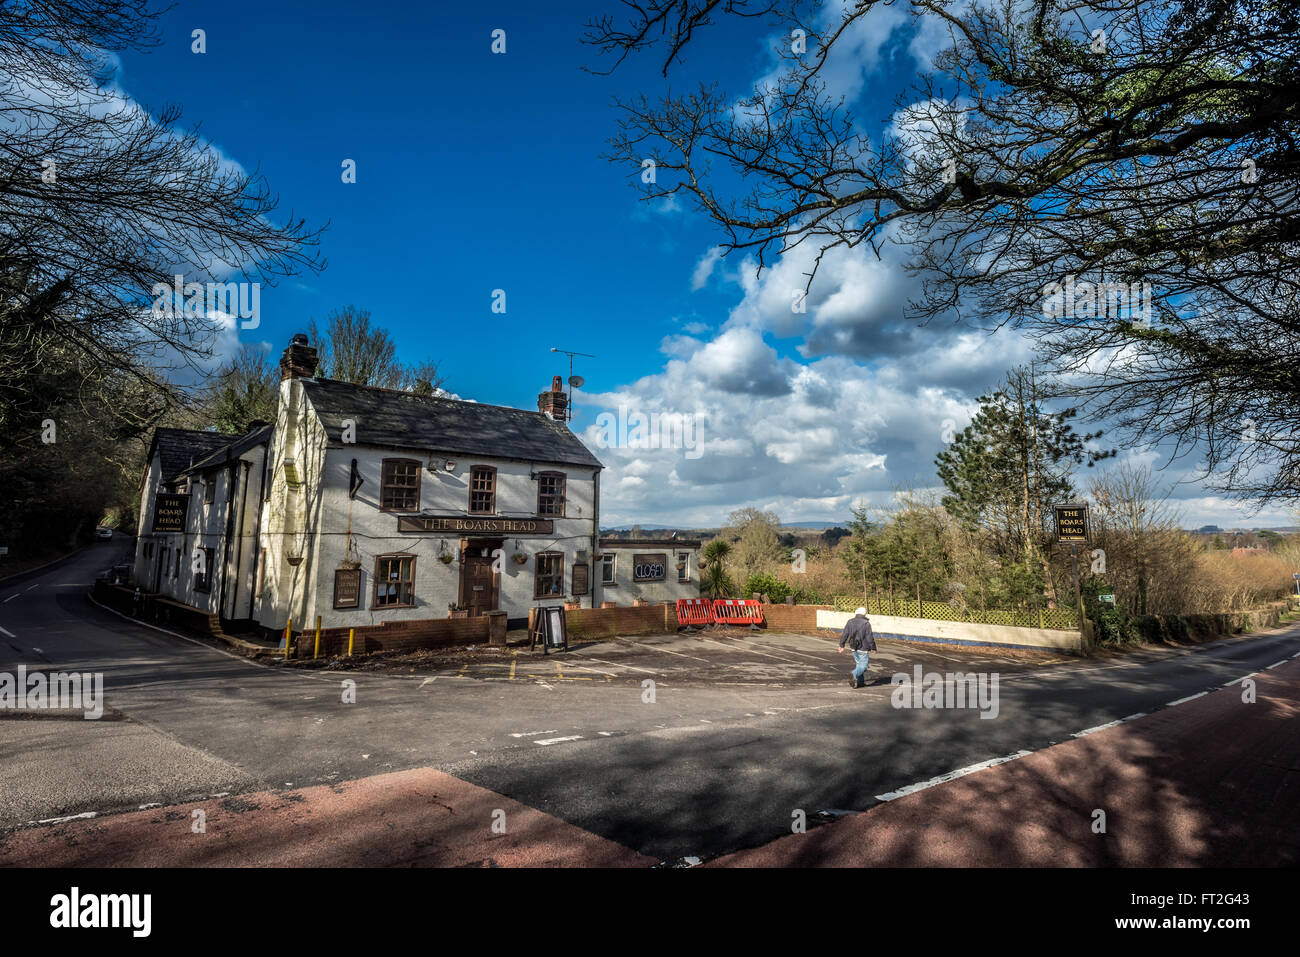 The Boar's Head pub in Horsham, West Sussex, now closed for business. - Stock Image